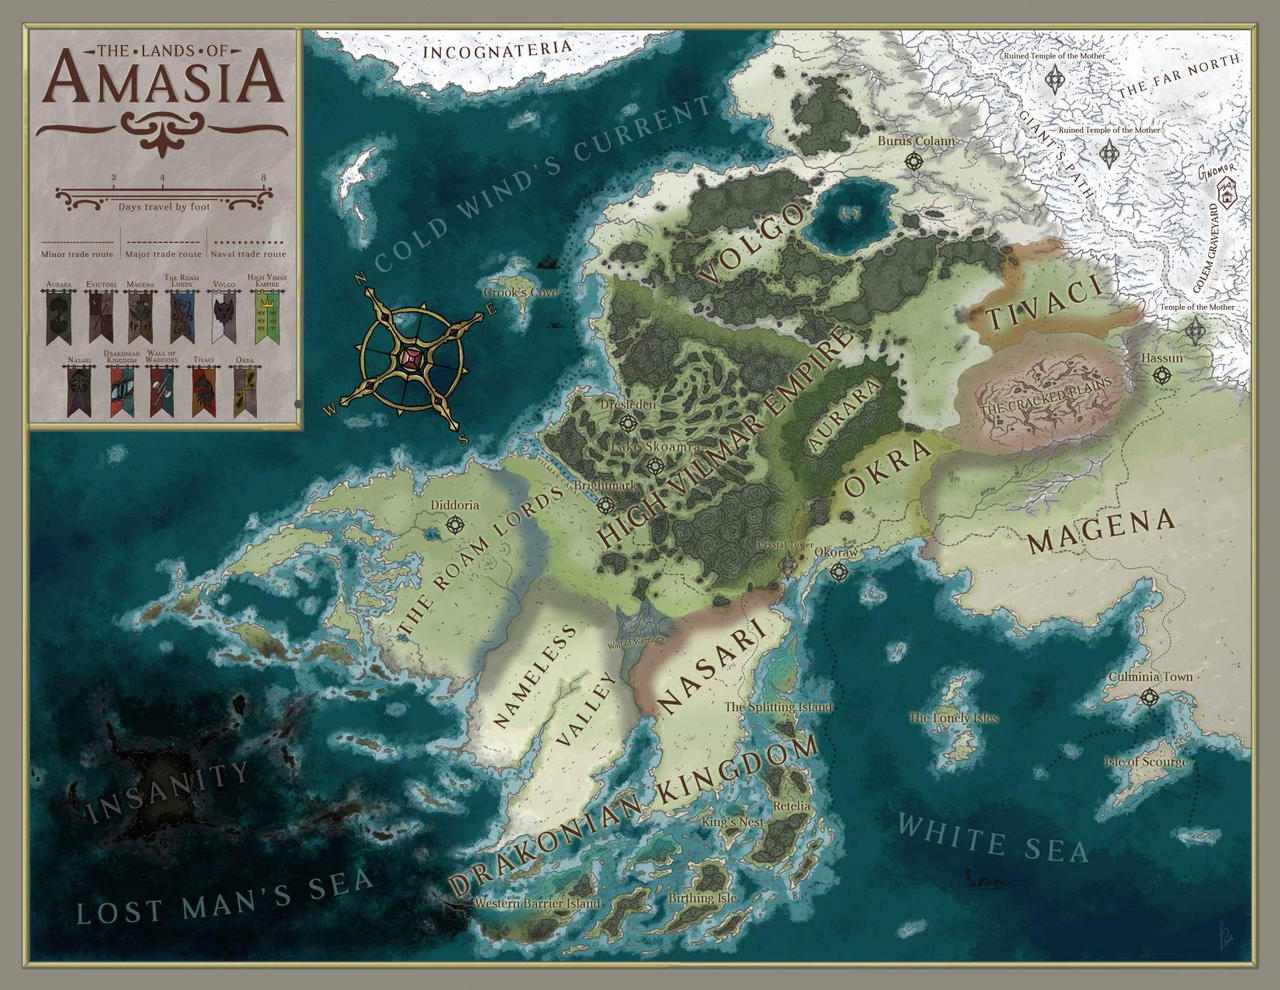 The Lands of Amasia [Commission]